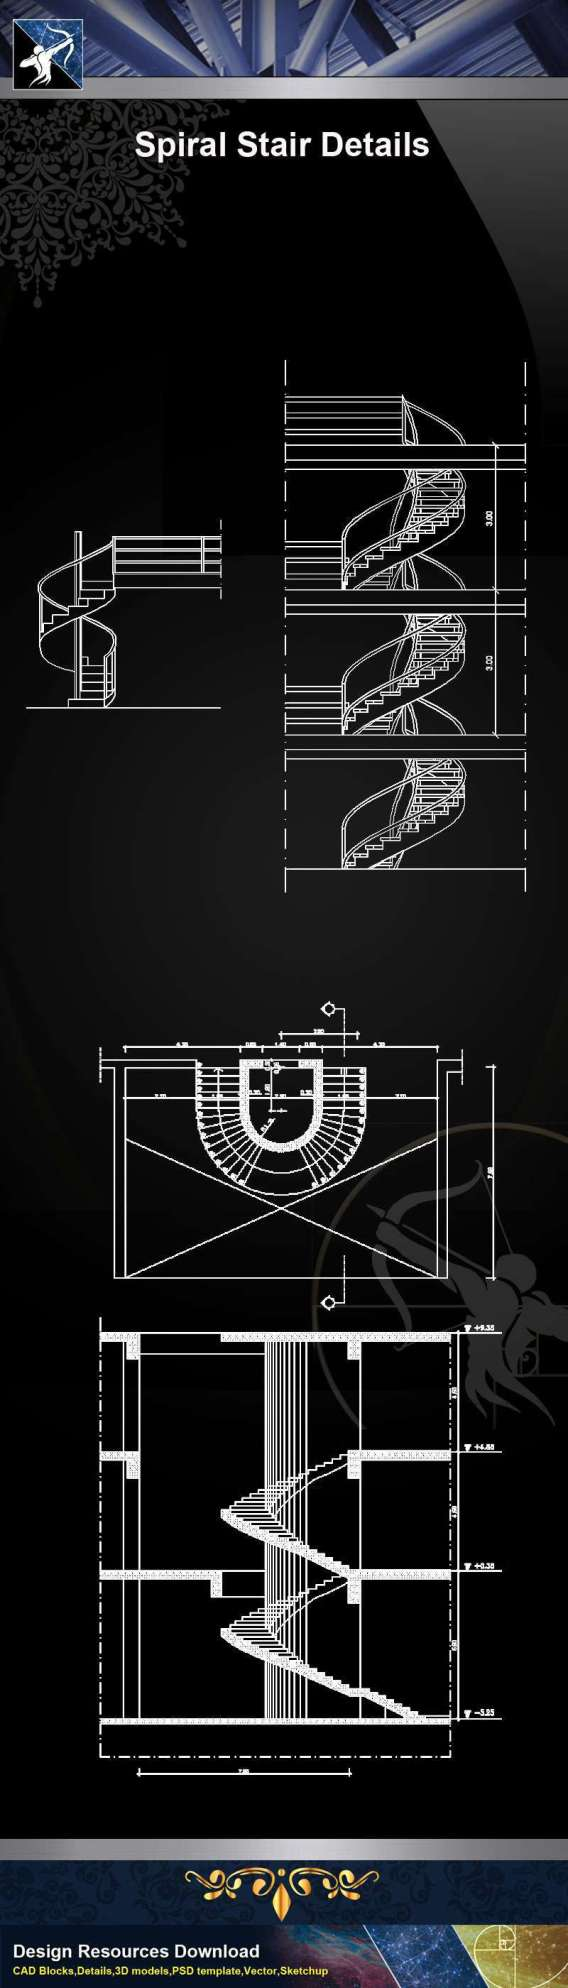 【Architecture CAD Details Collections】Spiral Stair CAD Details